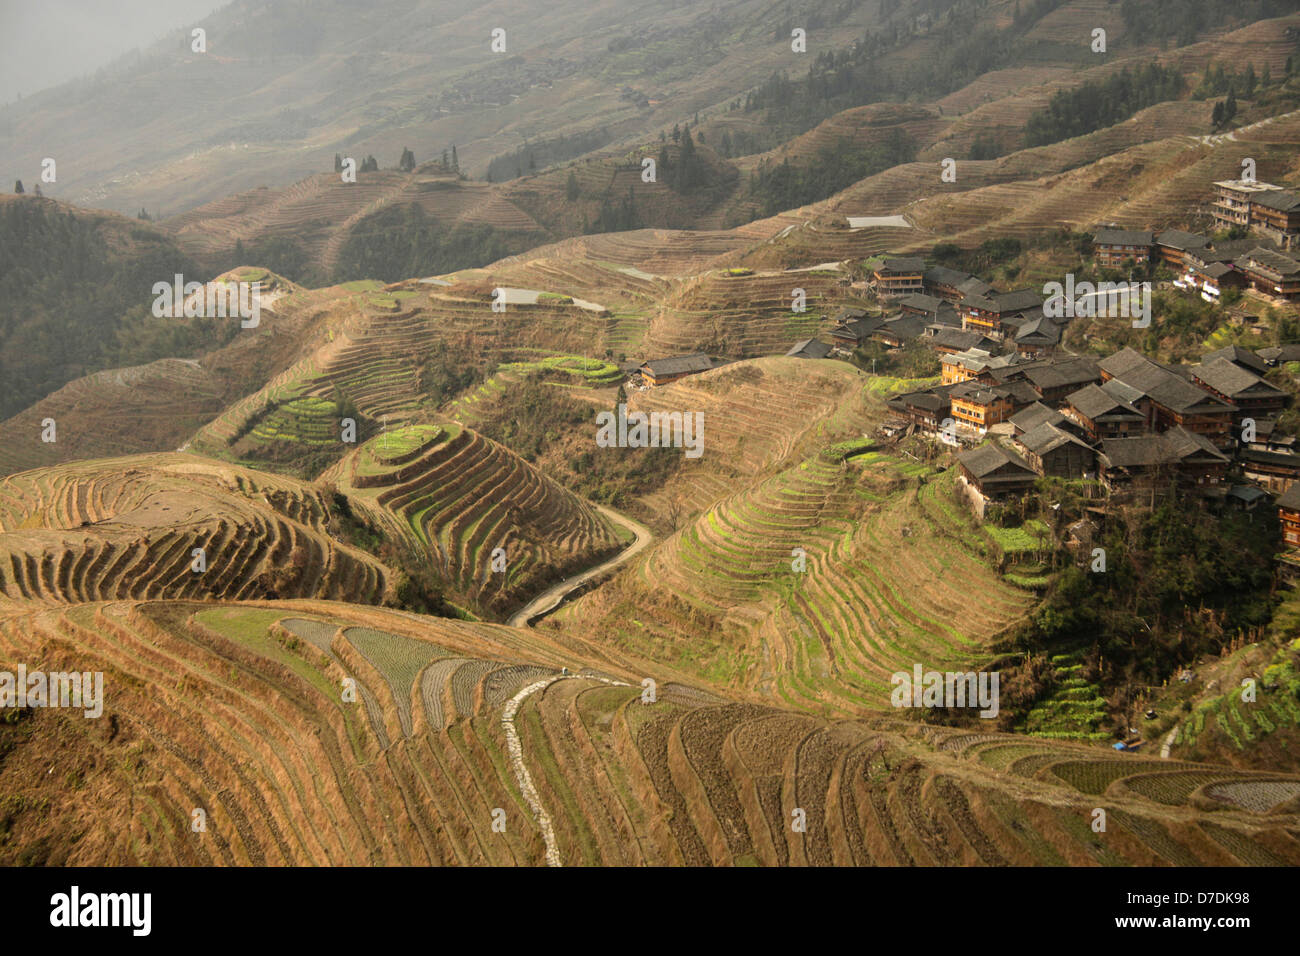 The world-famous rice terraces of Longji 'backbone of the dragon' or 'vertebra of the dragon' and - Stock Image